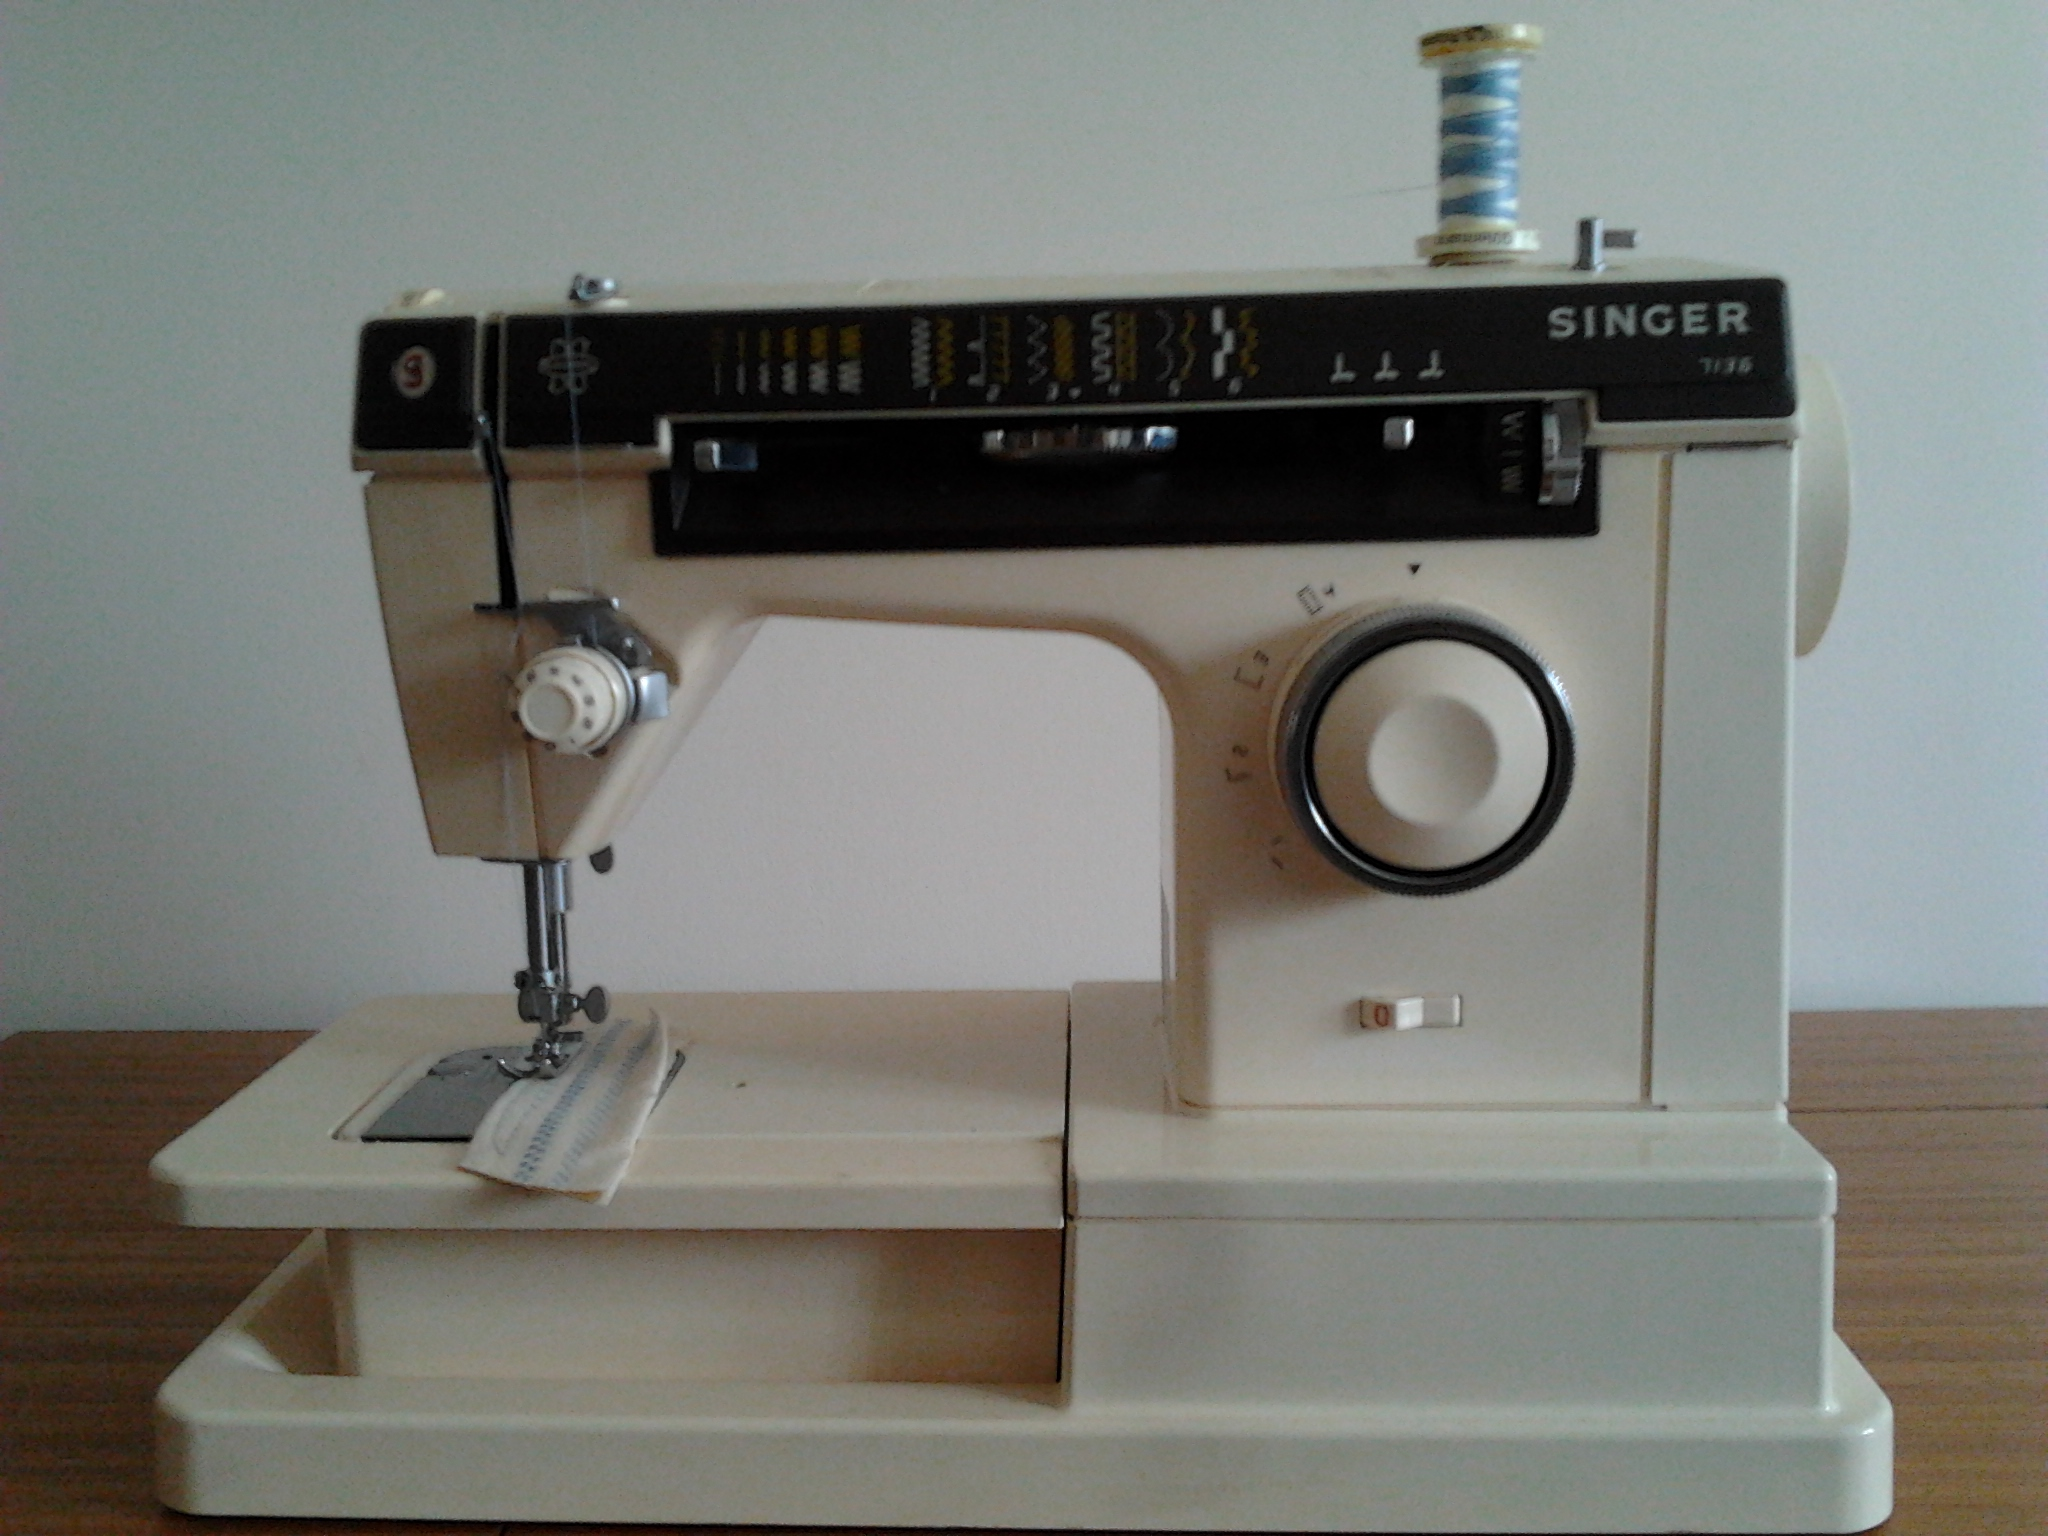 Singer 7136 Sewing Machine